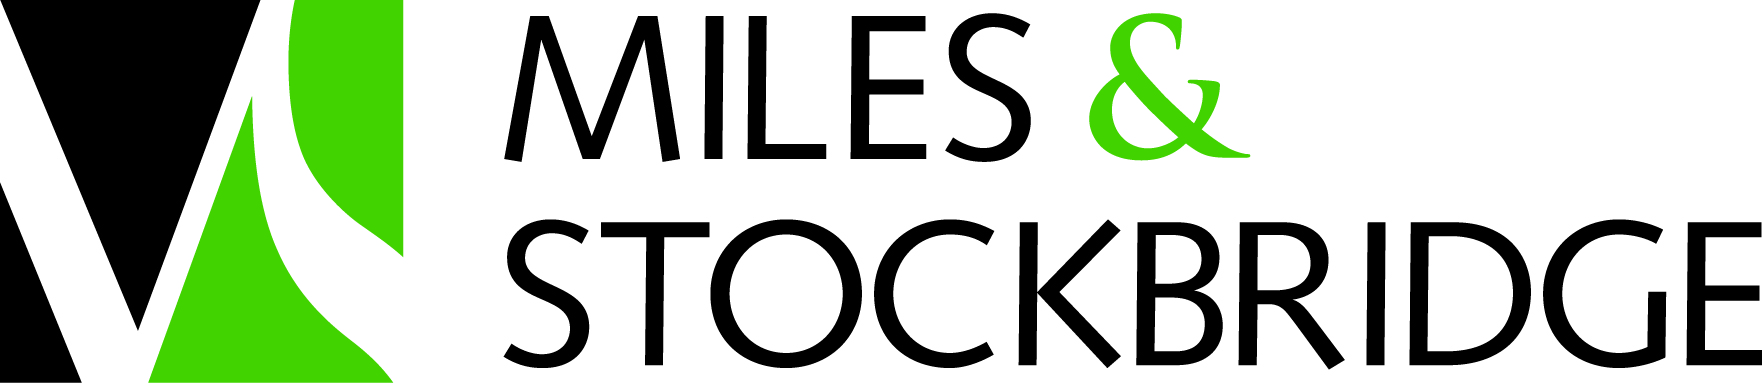 Miles & Stockbridge Logo